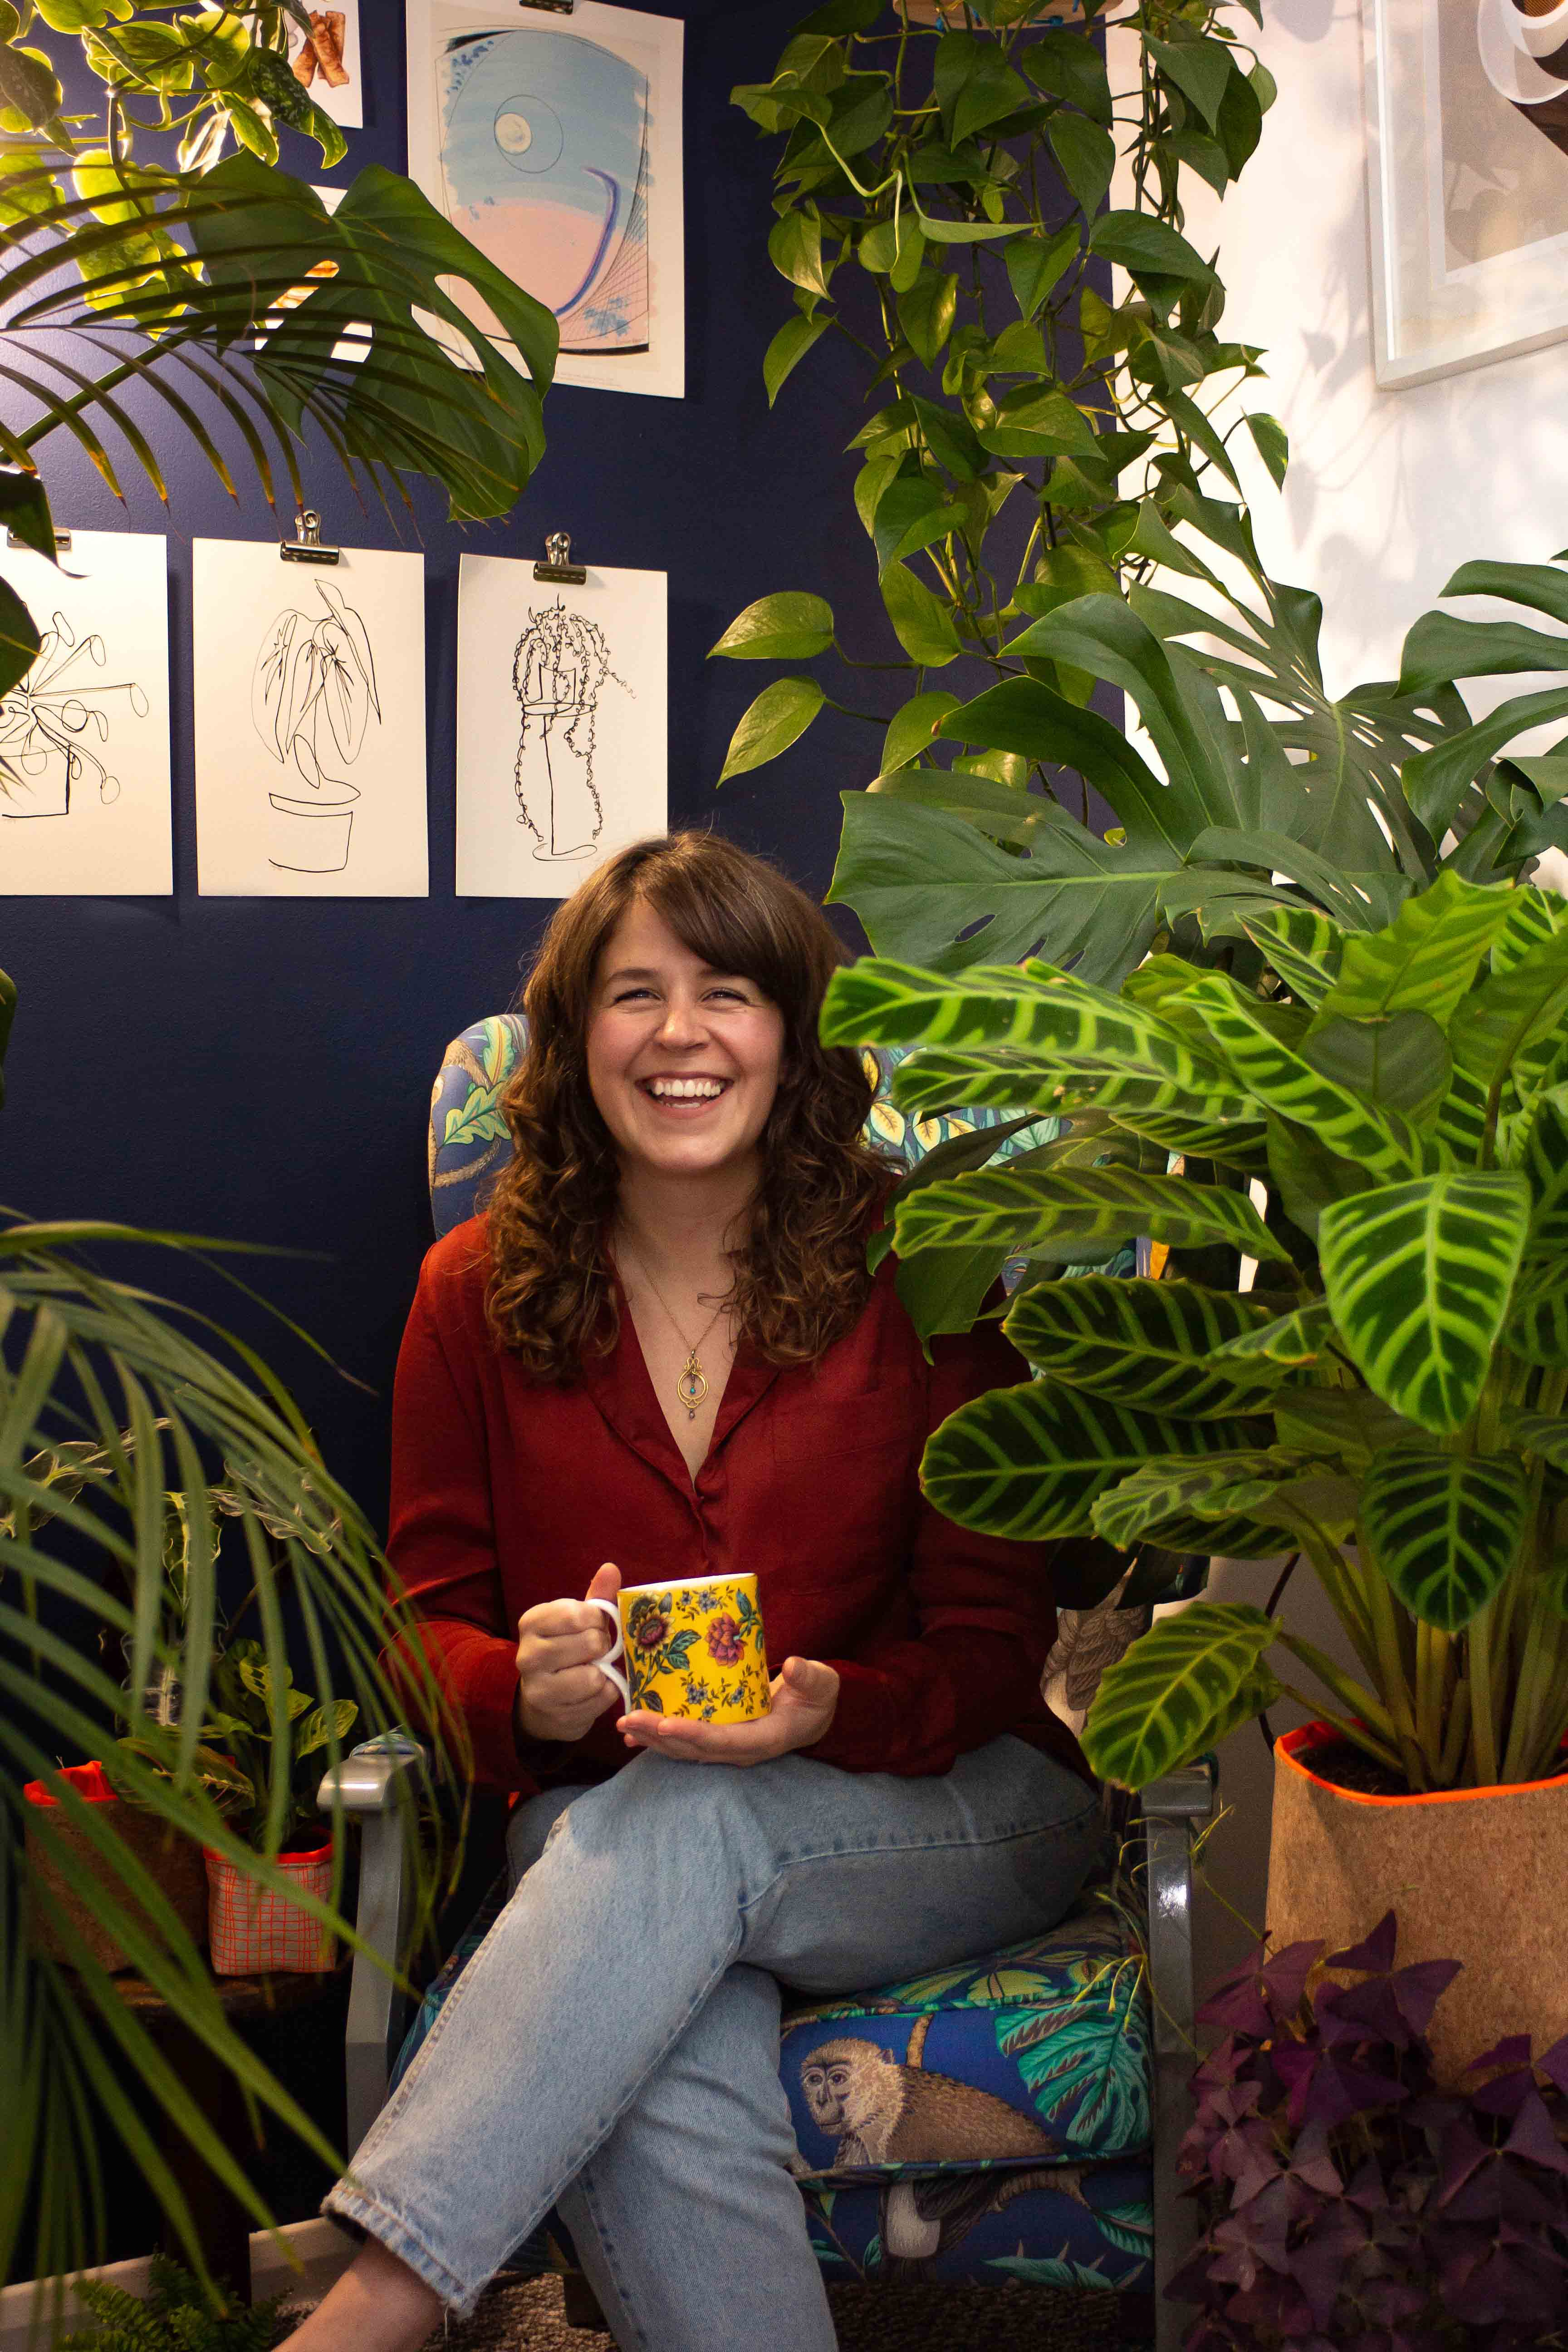 Rosanna Costello is shown in her house plant jungle, with a cup of coffee and a beautiful smile on her face.